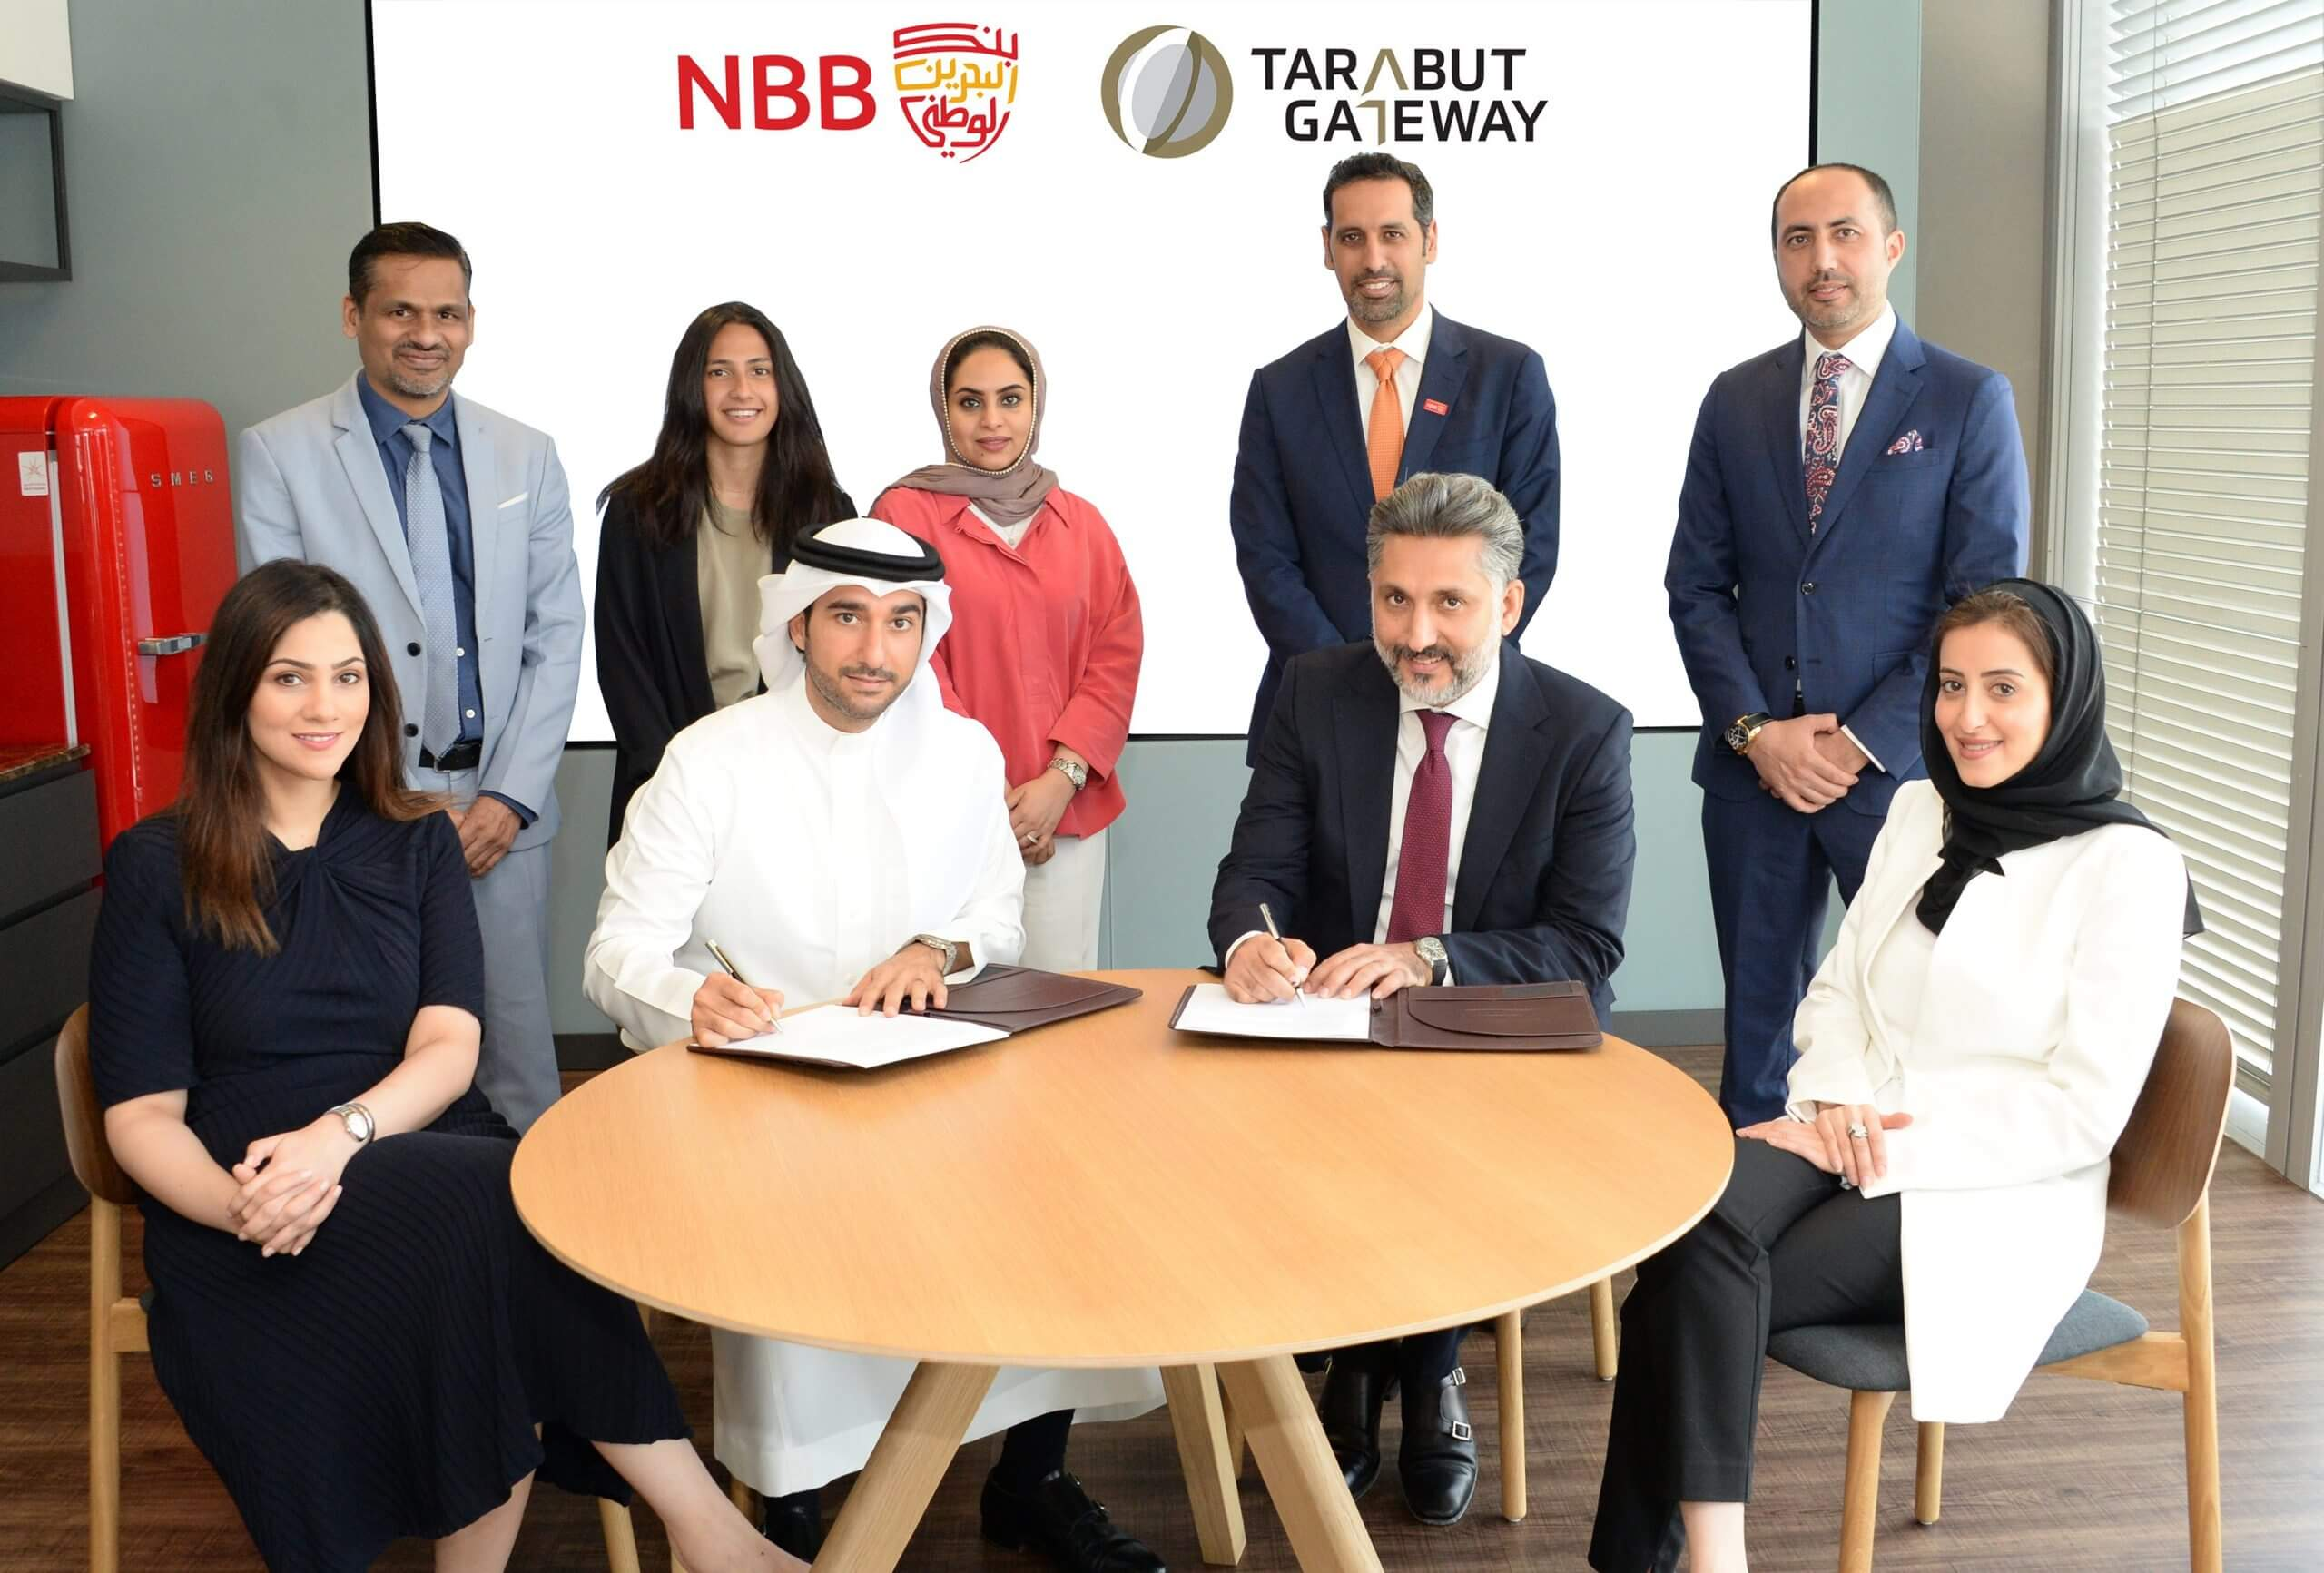 The National Bank of Bahrain Takes the Lead as the First Bank in MENA to Provide Open Banking Services